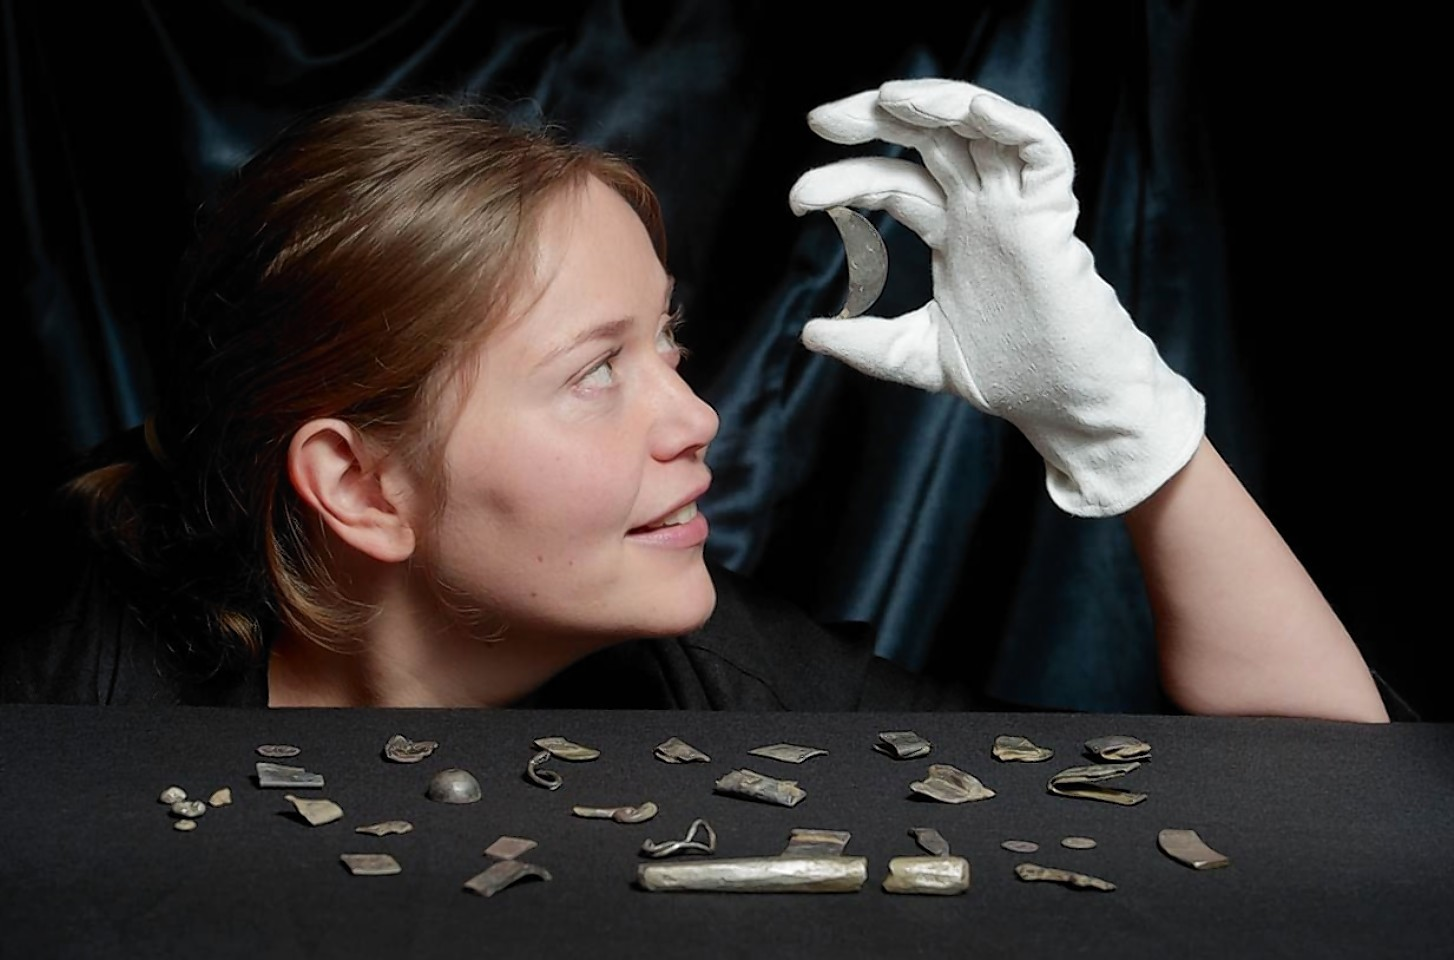 Archaeologists from National Museums Scotland and the University of Aberdeen's Northern Picts project have unearthed a hoard of Late Roman and Pictish silver buried in a field in Aberdeenshire